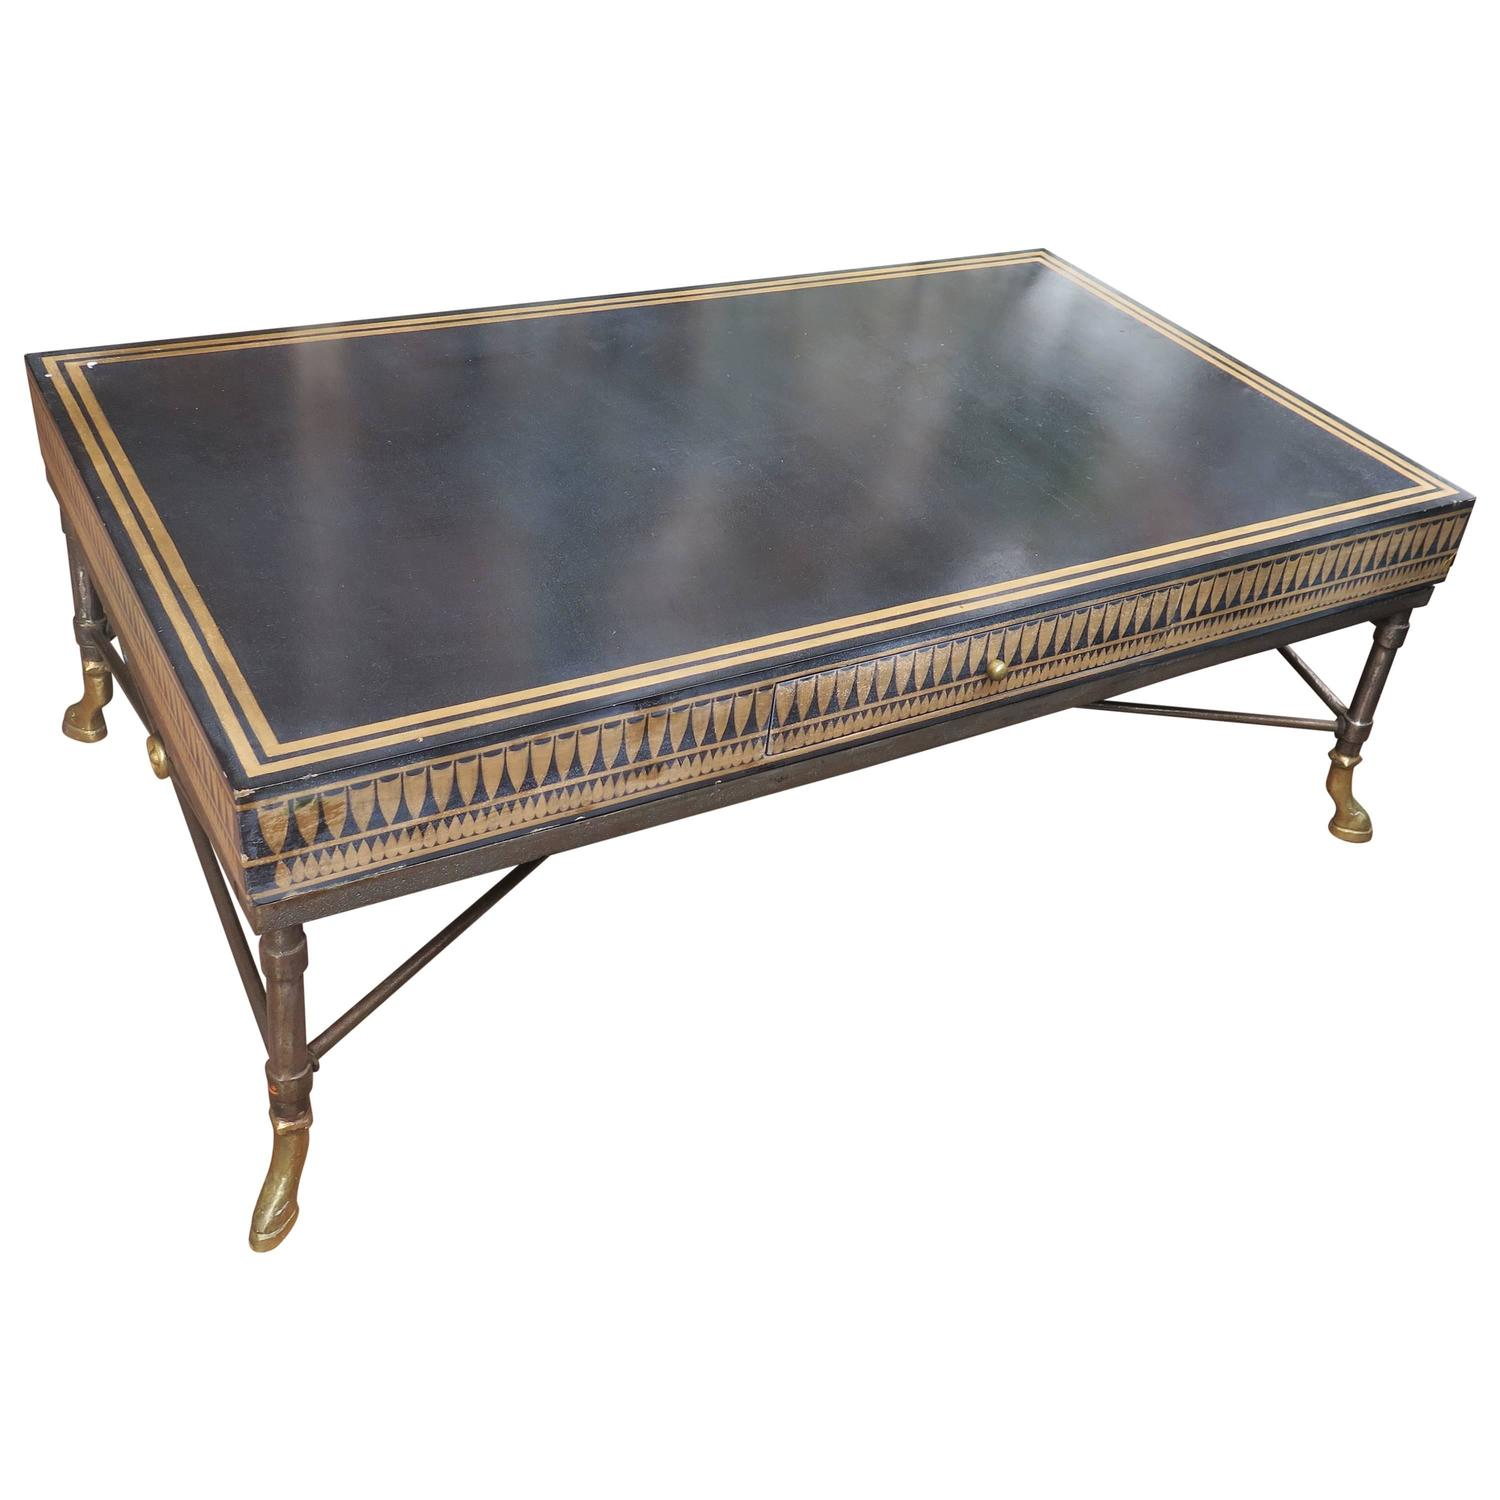 unique coffee table with bronze feet black and gold top. Black Bedroom Furniture Sets. Home Design Ideas